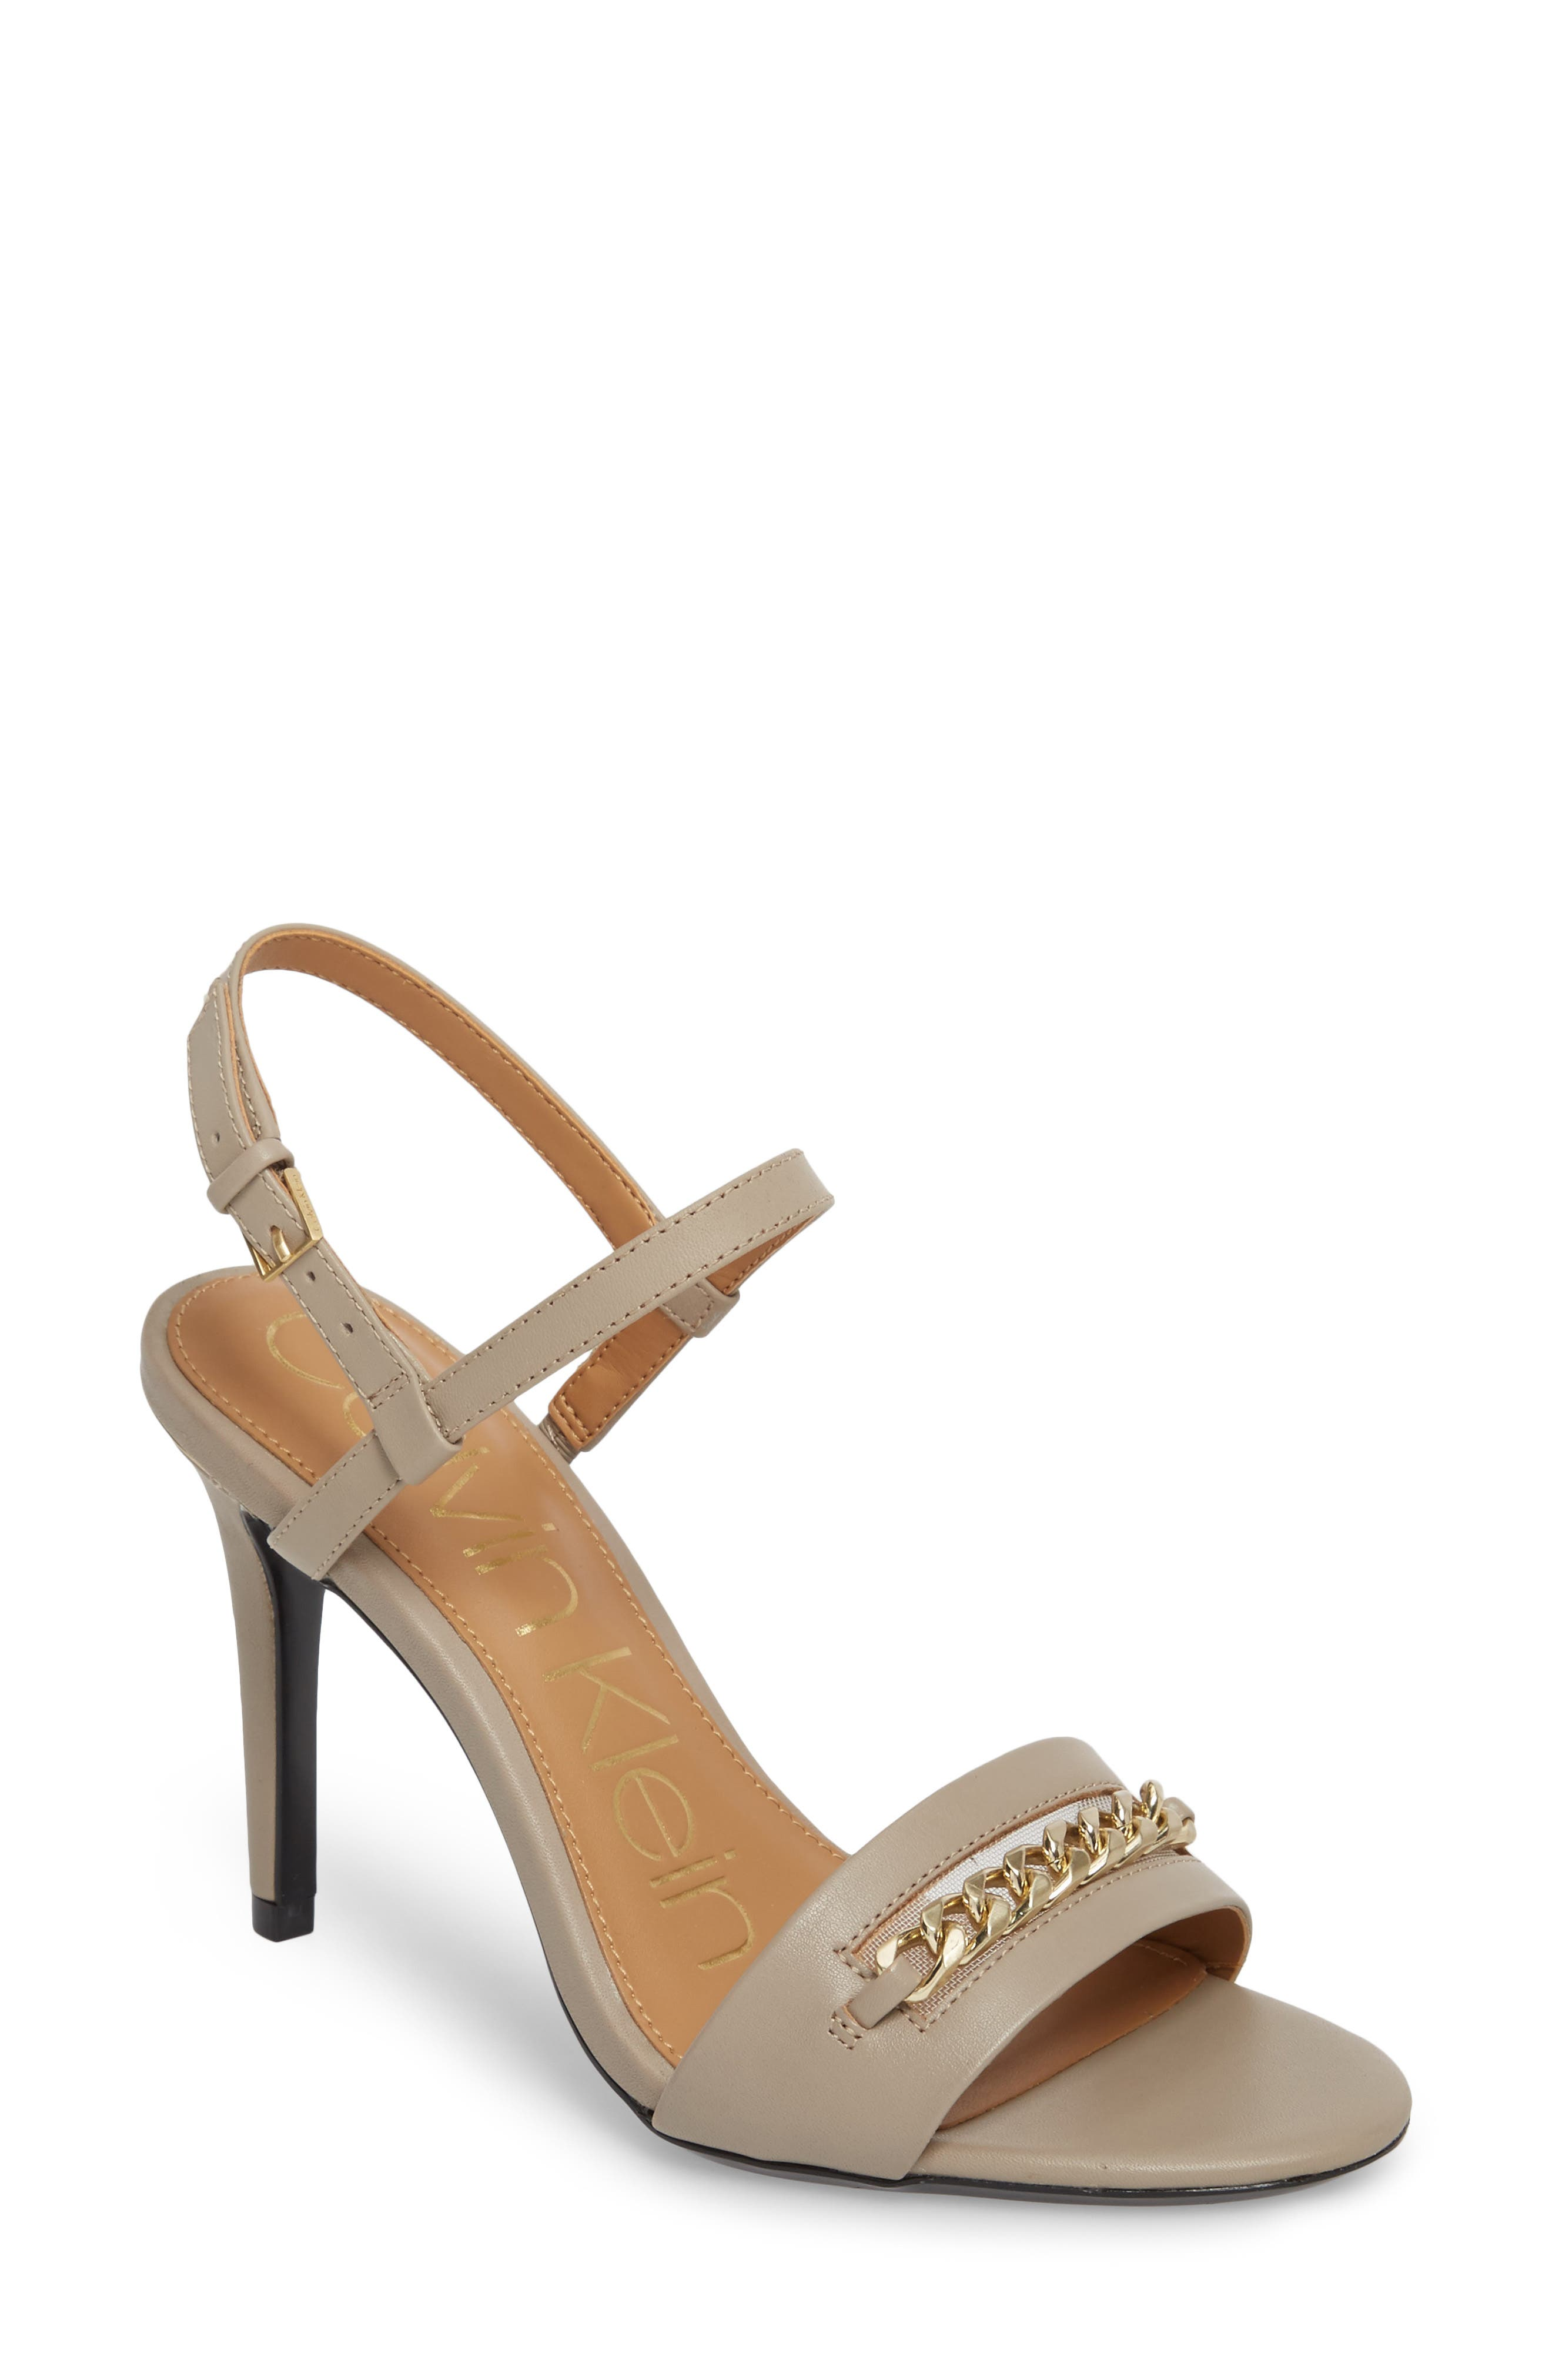 Nori Sandal,                         Main,                         color, Clay Leather